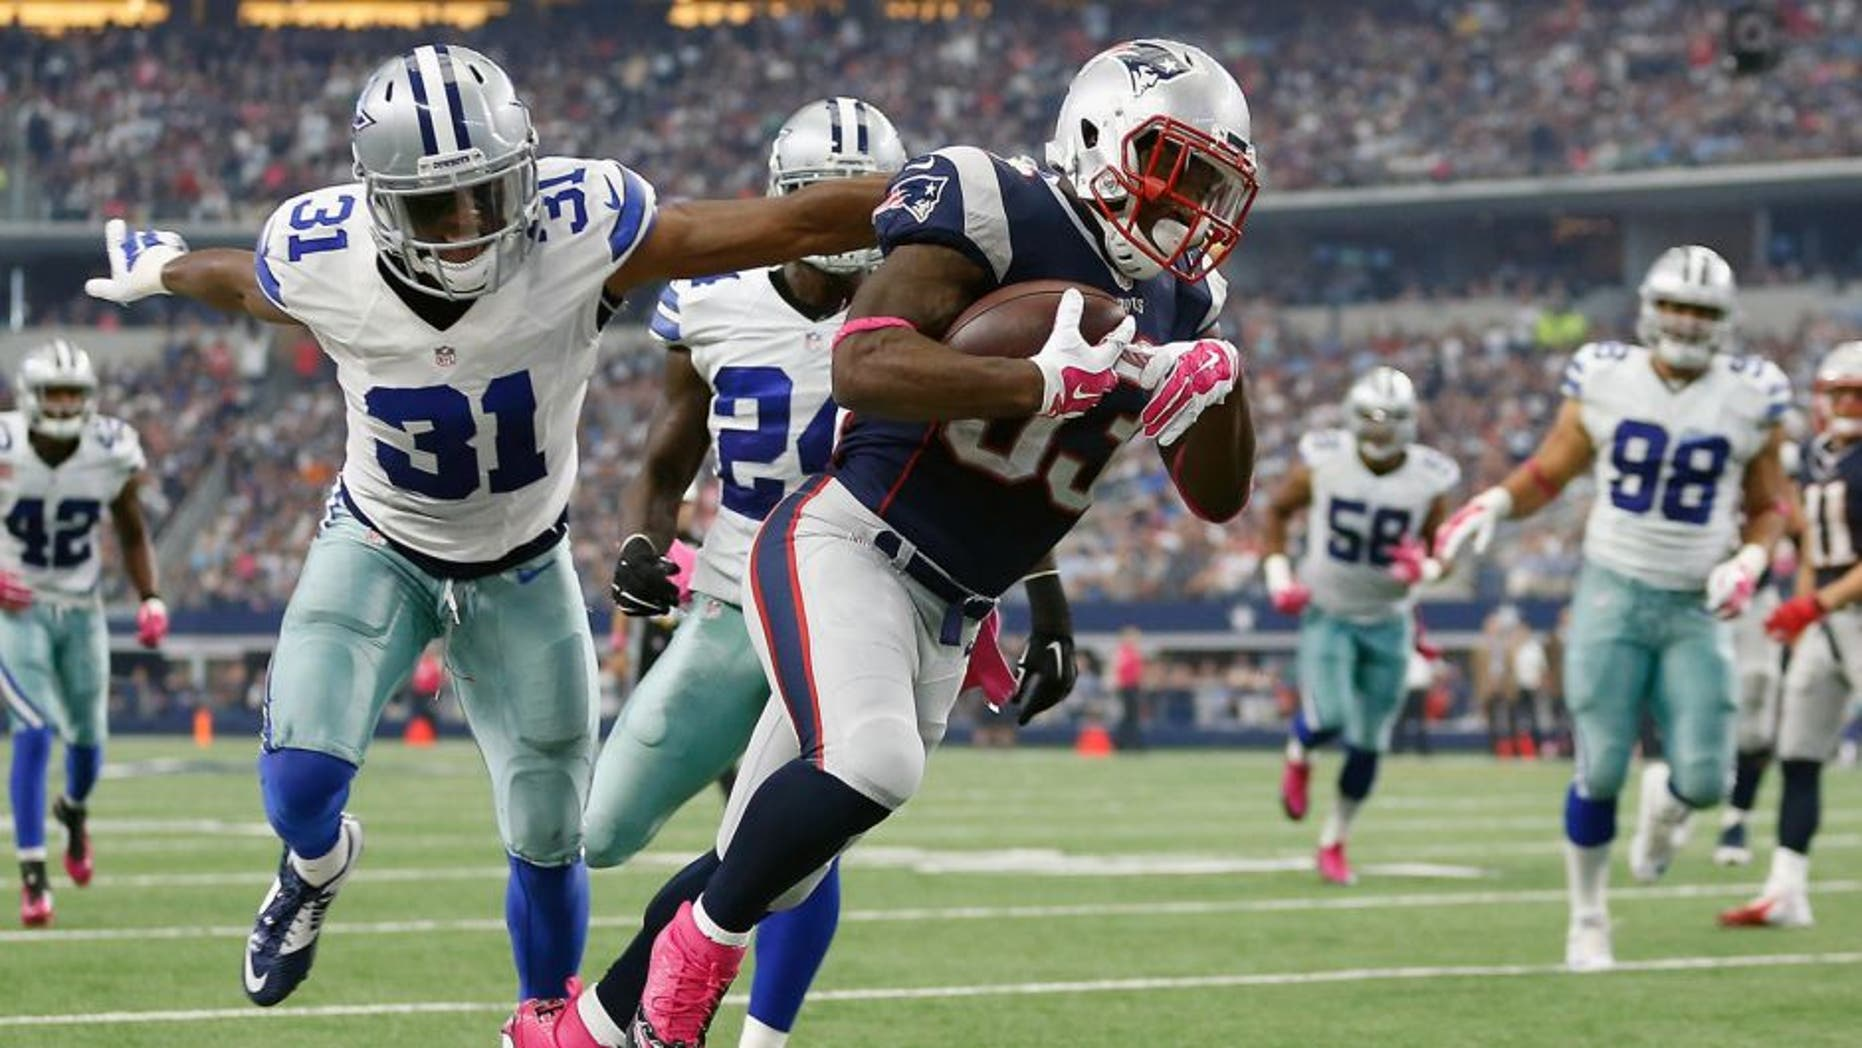 ARLINGTON, TX - OCTOBER 11: Running back Dion Lewis #33 of the New England Patriots carries the ball as cornerback Byron Jones #31 of the Dallas Cowboys tries to make the tackle during the first half of the NFL game at AT&T Stadium on October 11, 2015 in Arlington, Texas. (Photo by Christian Petersen/Getty Images)